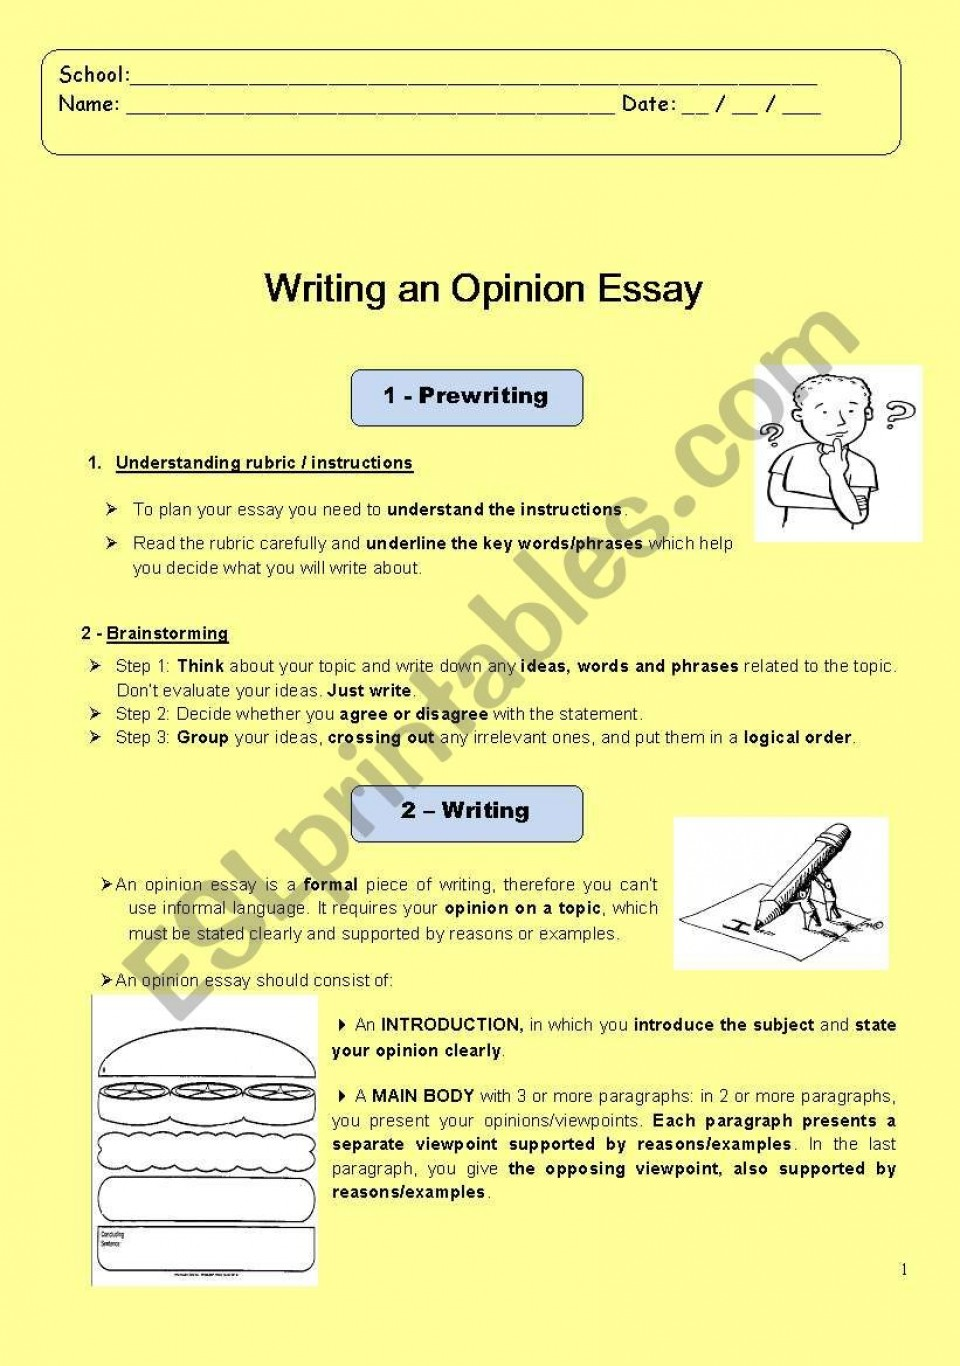 014 How To Write An Opinion Essay 519469 1 Unbelievable 3rd Grade College 960